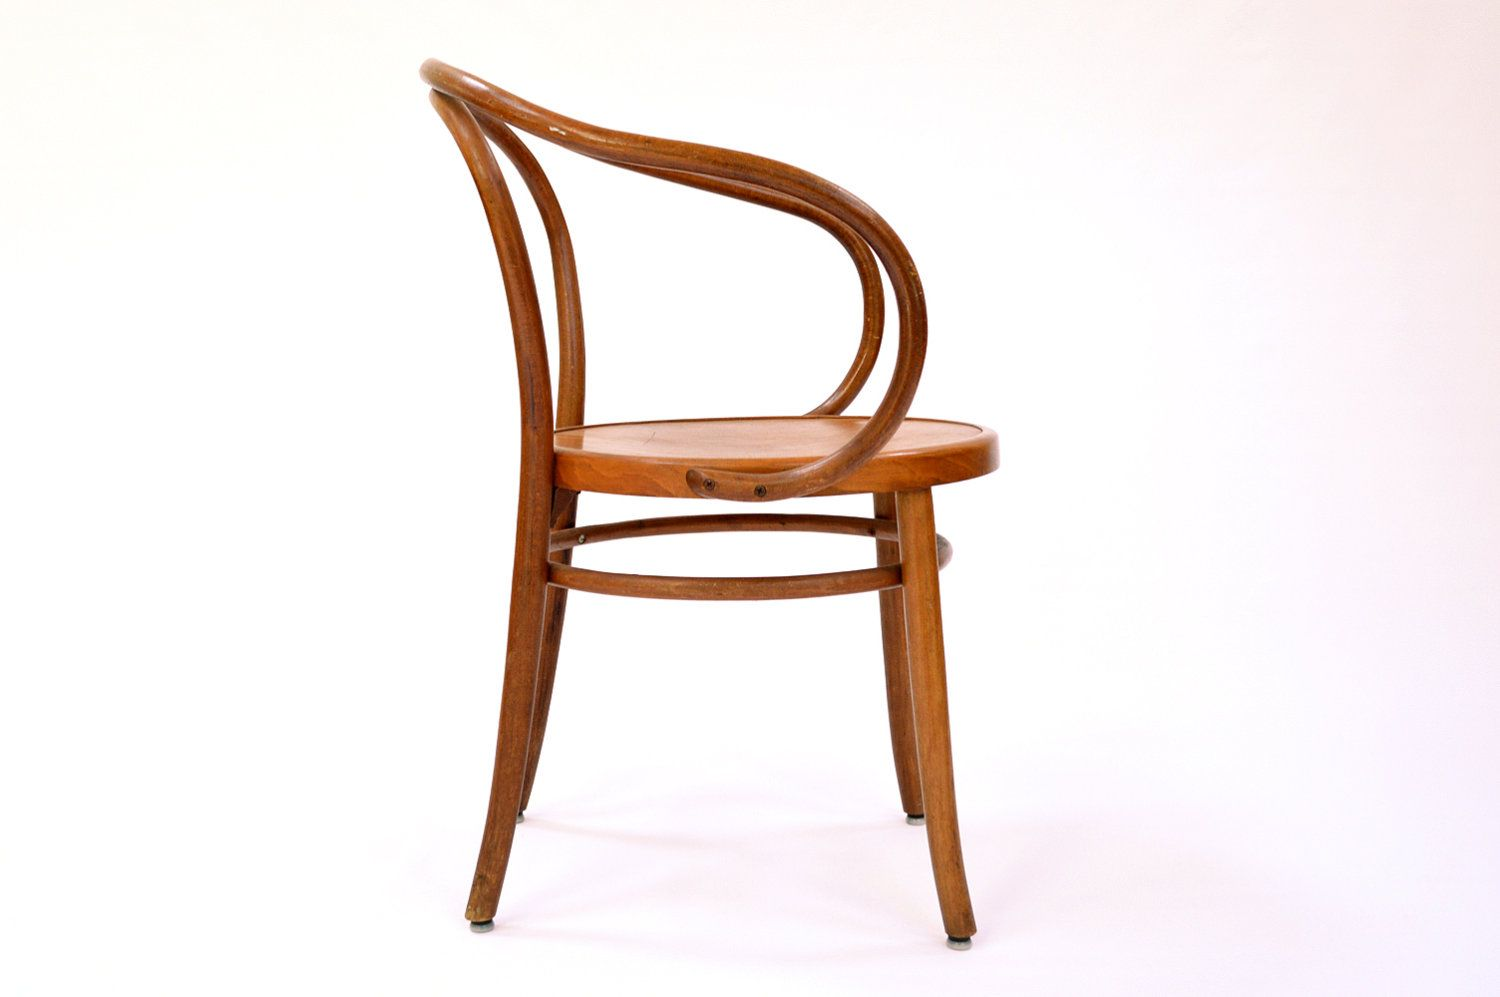 Coprisedie Thonet ~ On hold thonet corbusier chair has label arms mart stam and